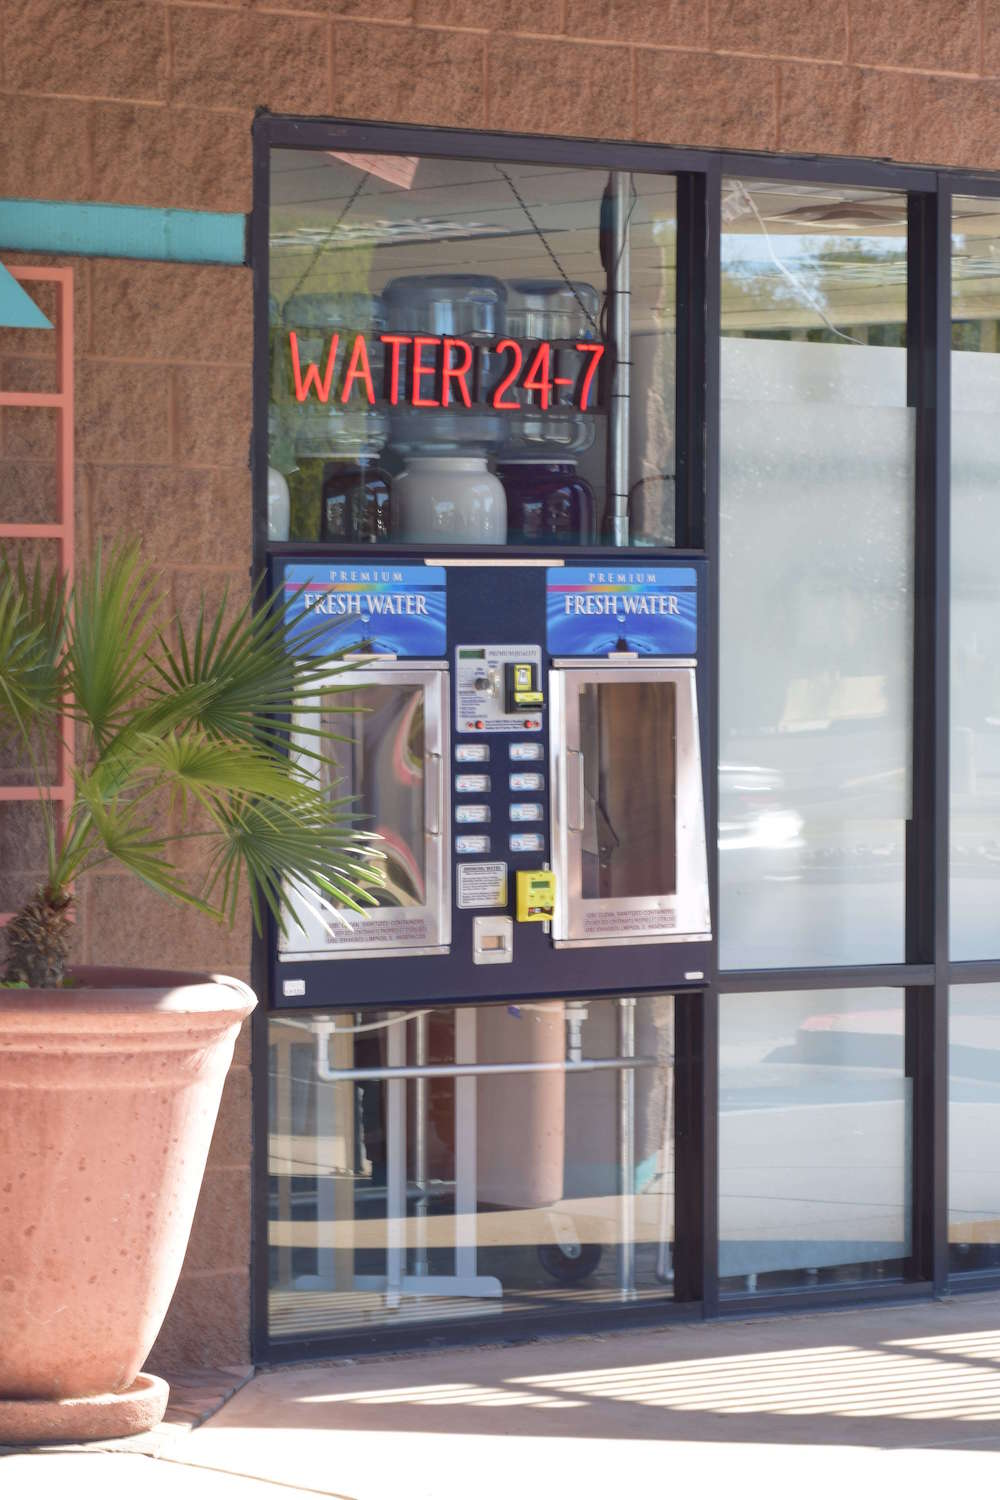 water24-7 - Our water dispenser can be used whenever you'd like, at any time of the day. You can get our great-tasting water even when were not open!